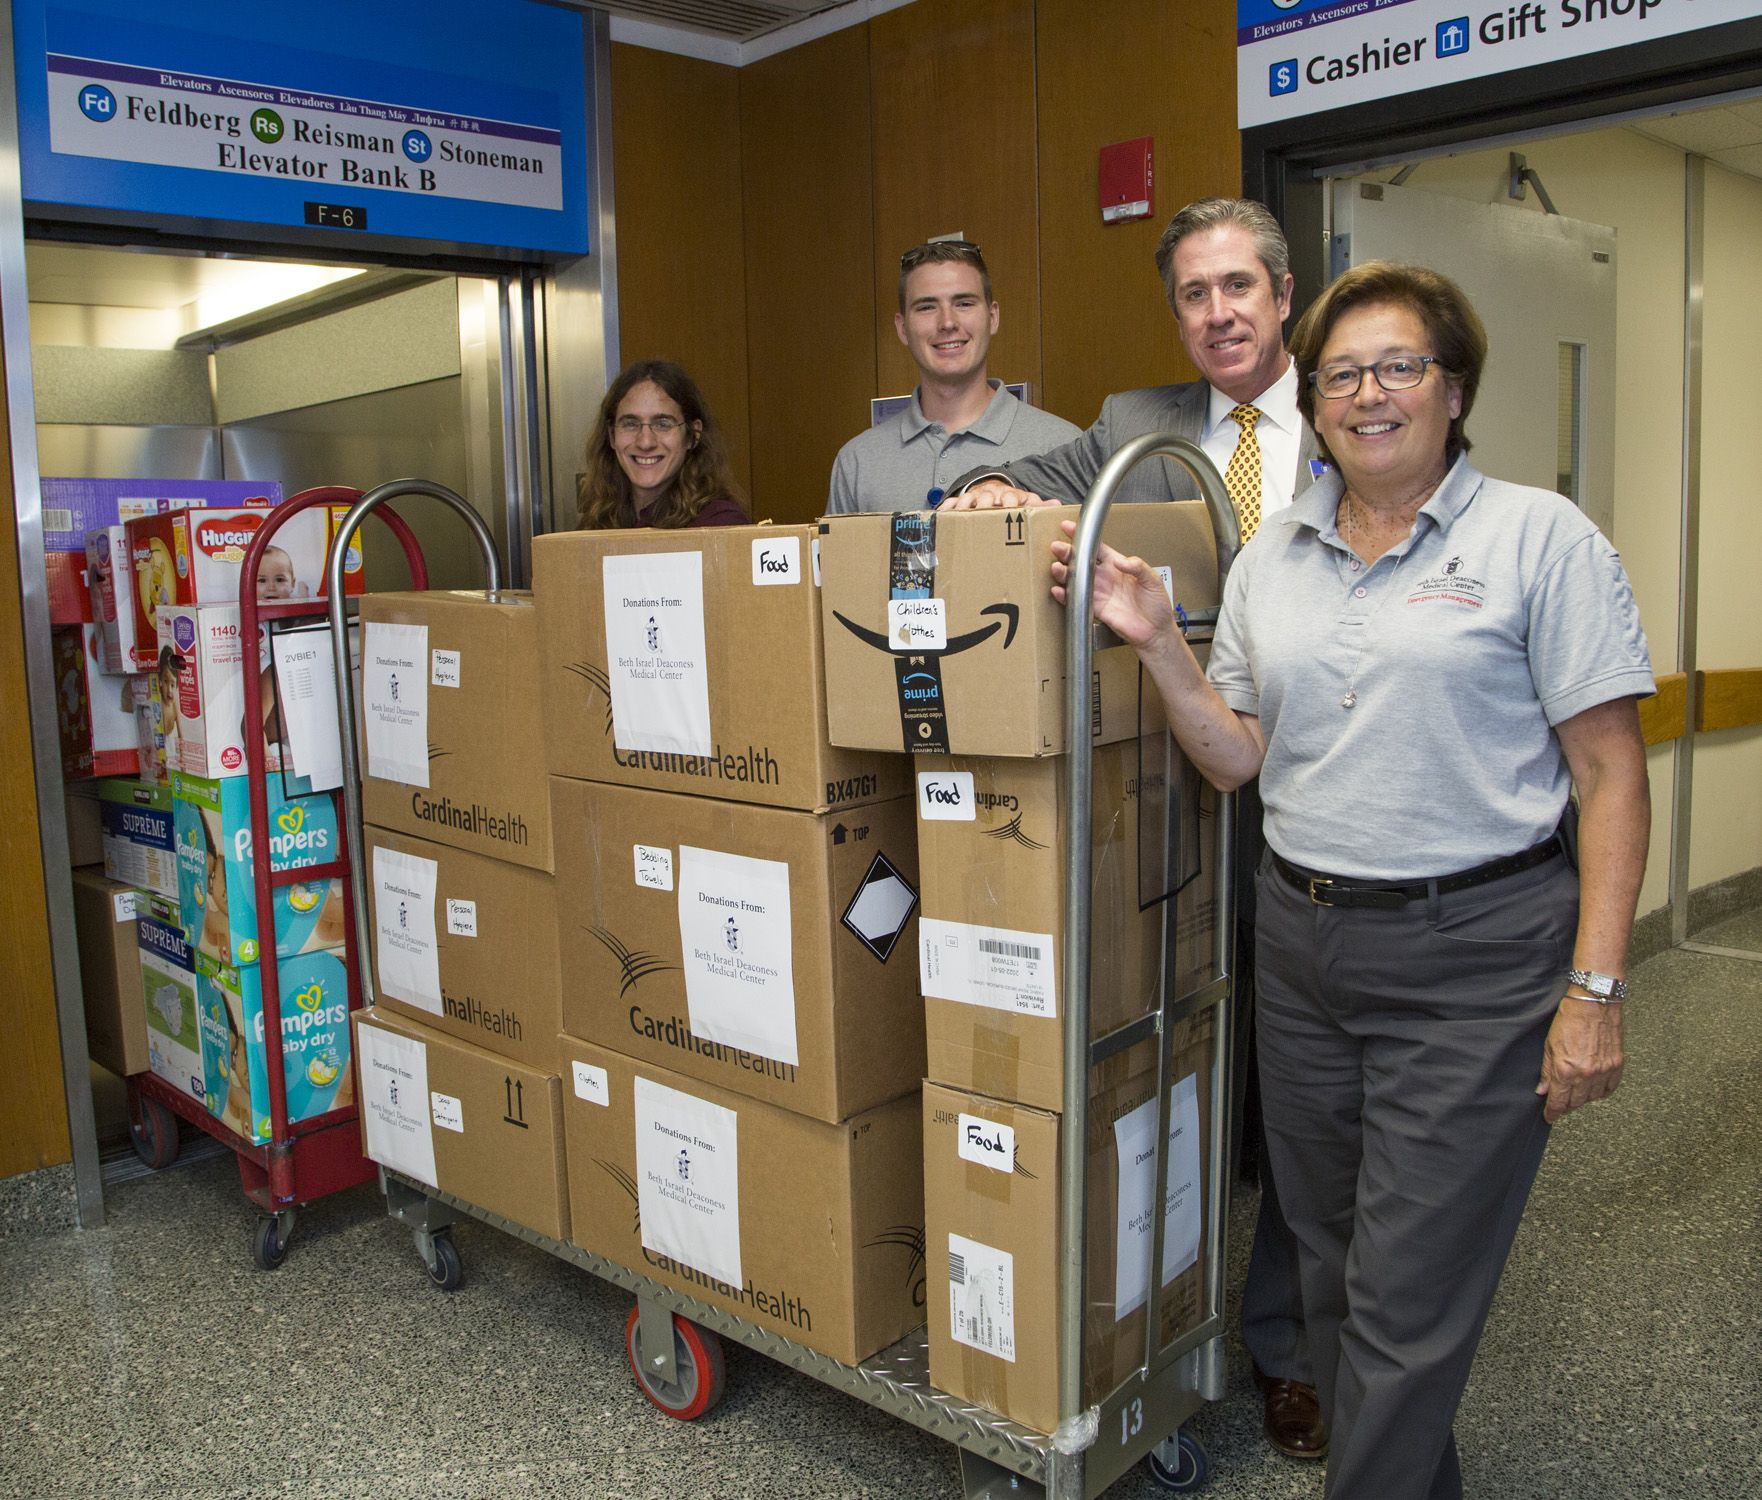 A Big Thanks To Everyone At Bidmc Who Pitched In To Help Contribute Hundreds Of Items In Less Than 48 Hours To The Cit Emergency Management Emergency Gift Shop